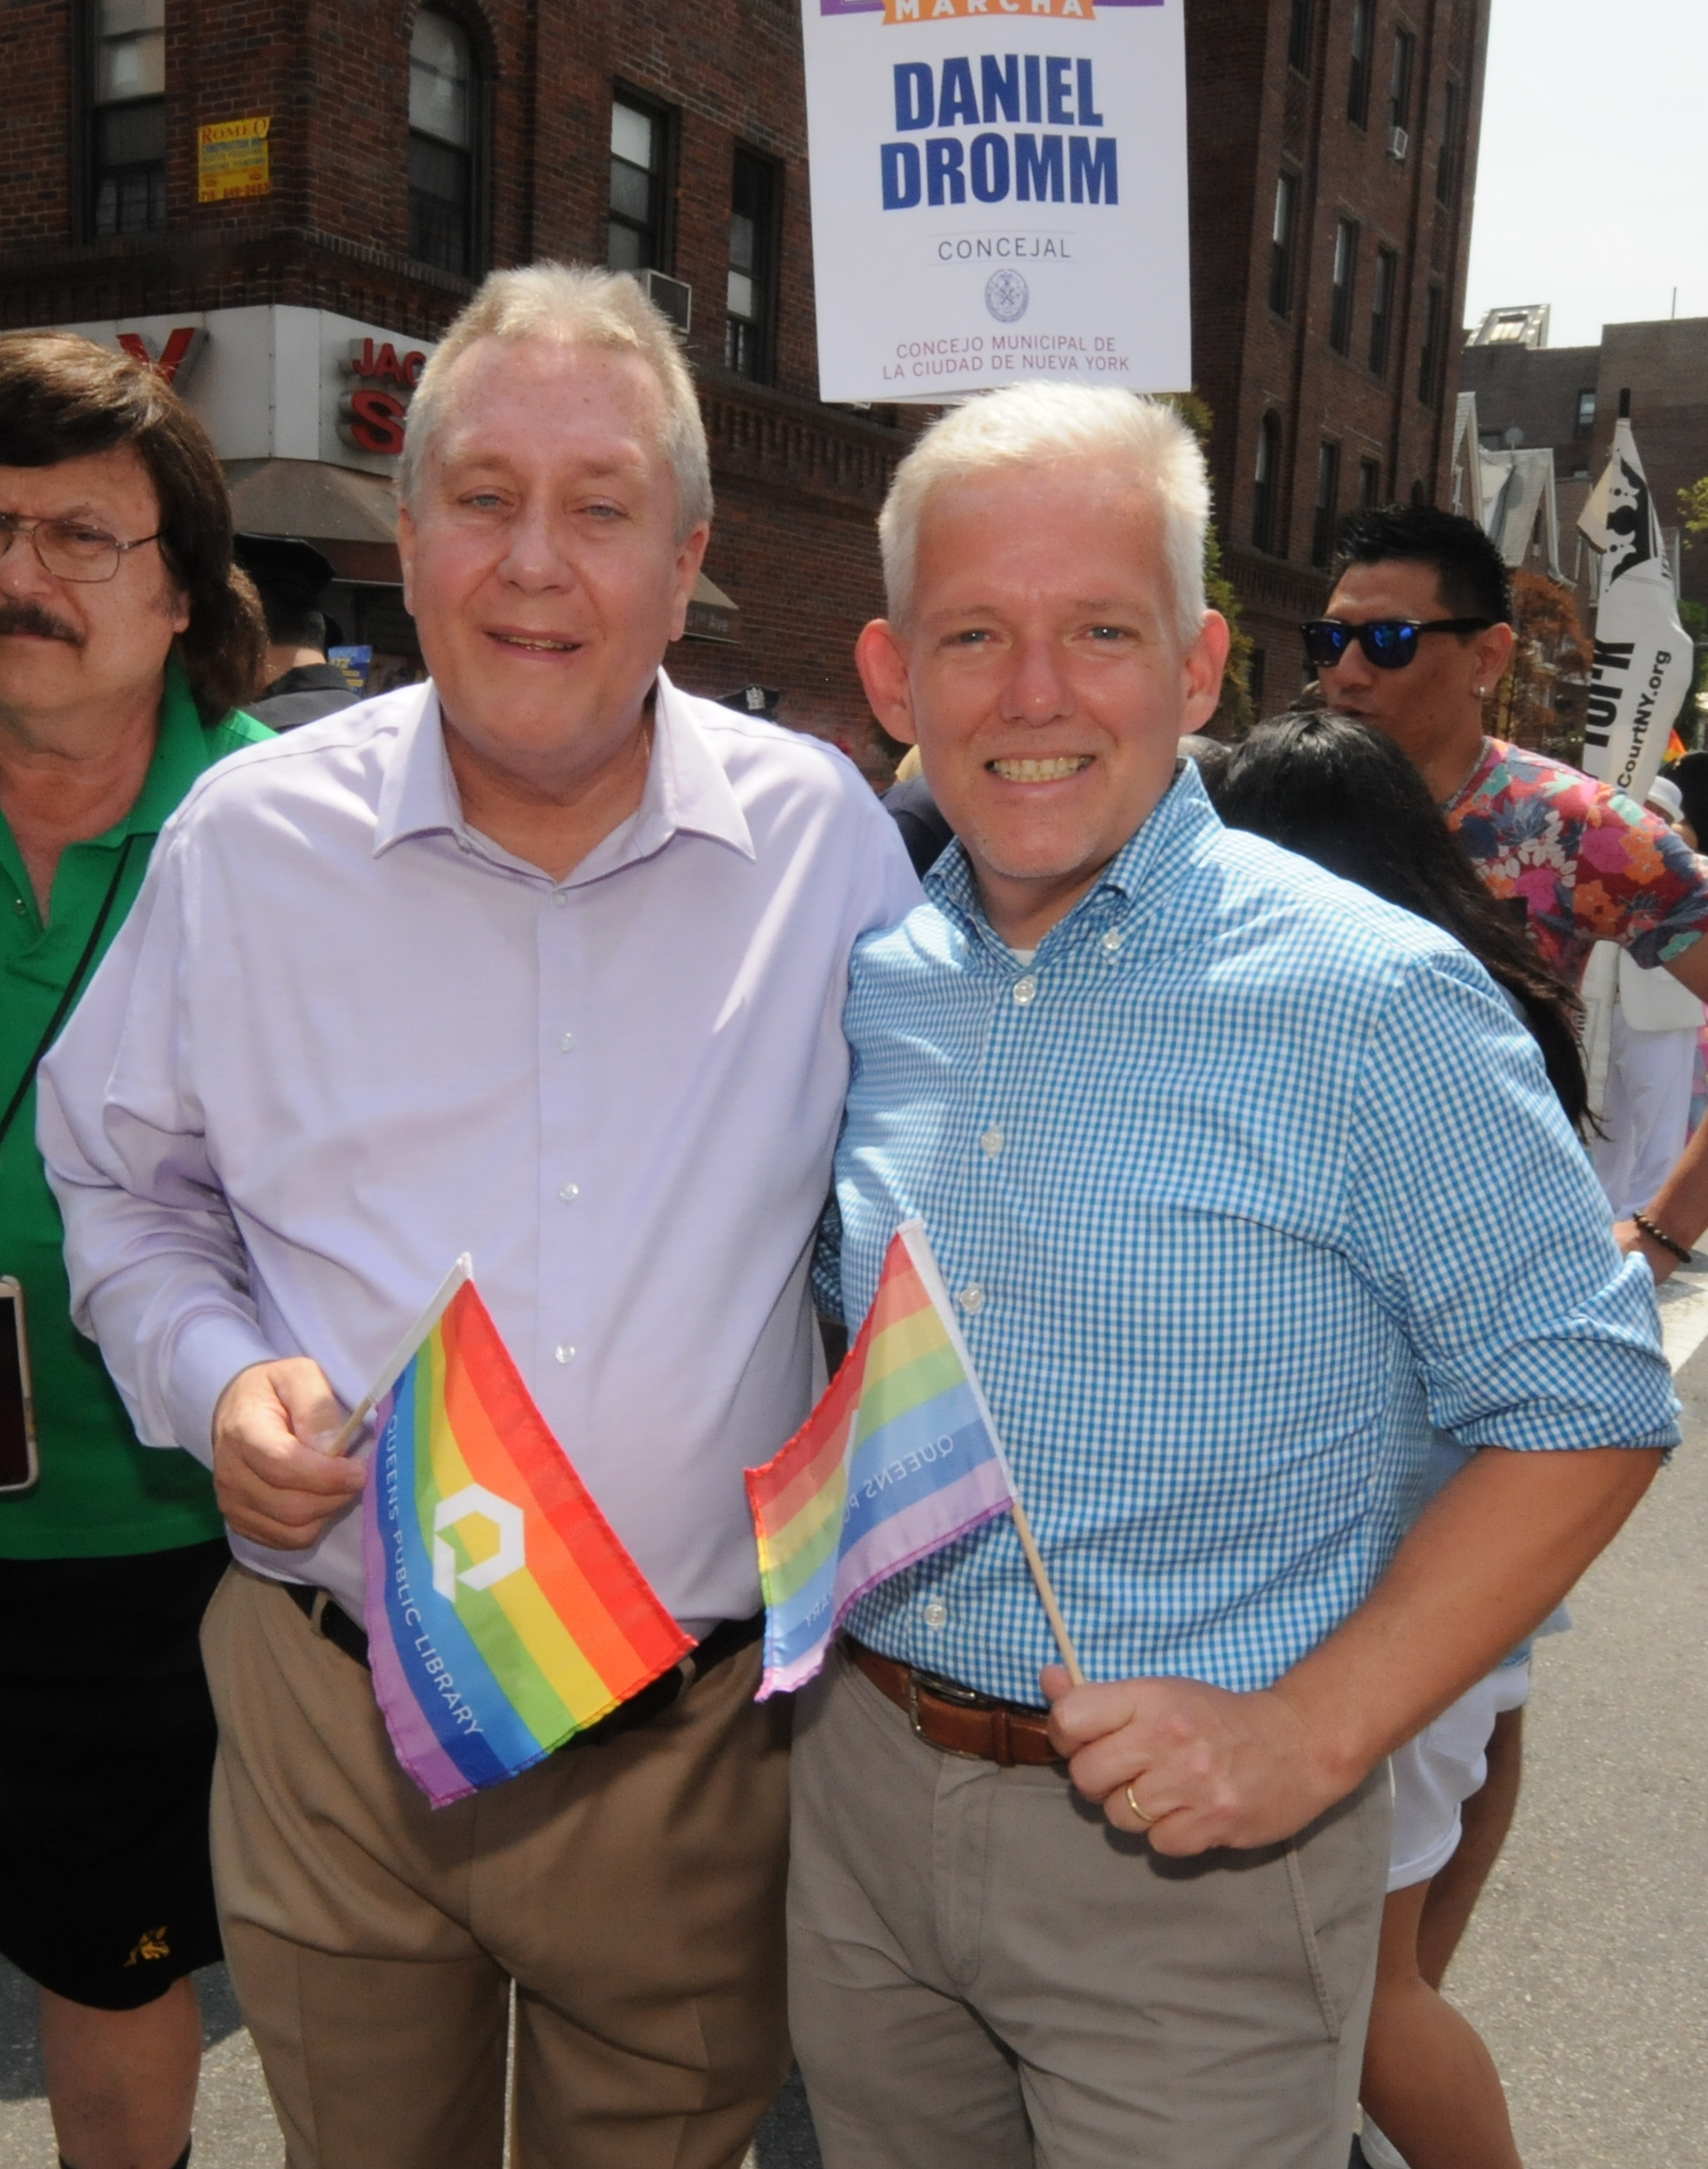 Councilmembers Daniel Dromm and Jimmy Van Bramer, who announced he will run for Queens Borough President.